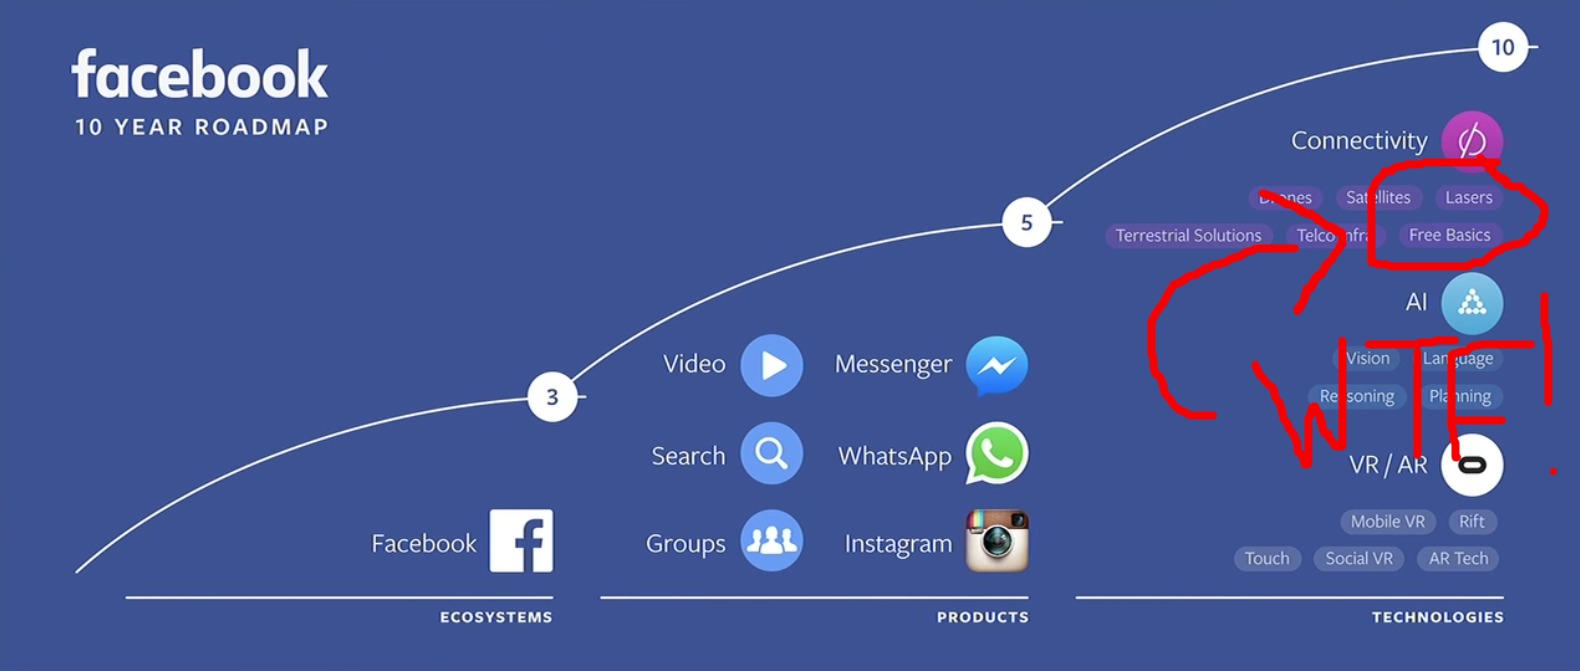 5 Things to Know About Facebook's Event Today